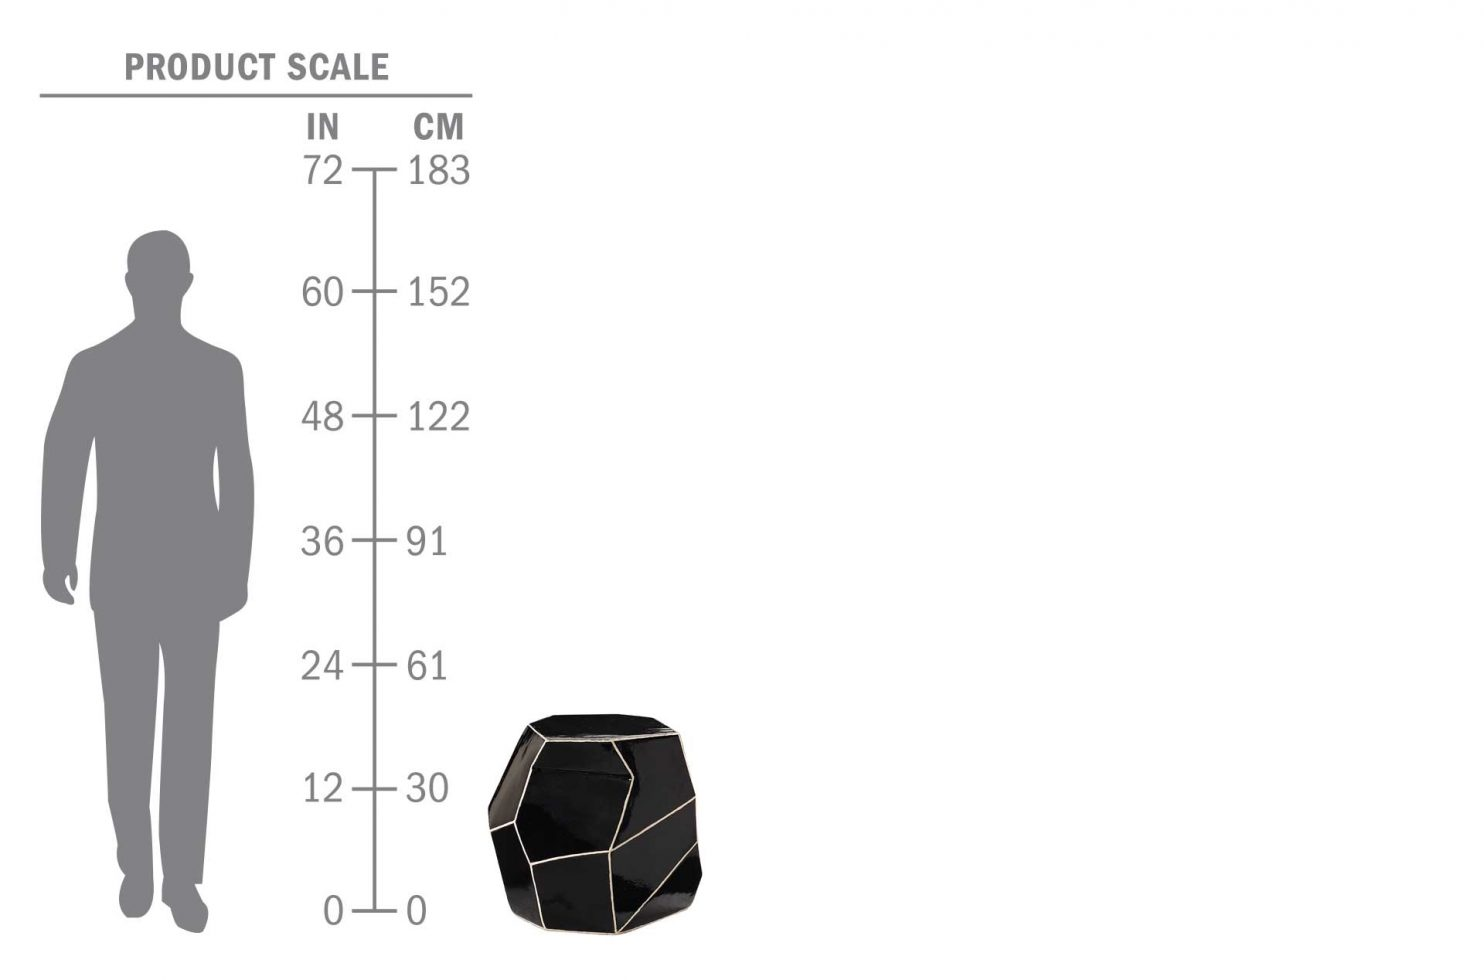 cer geo stool 308FT346P2BW scale human